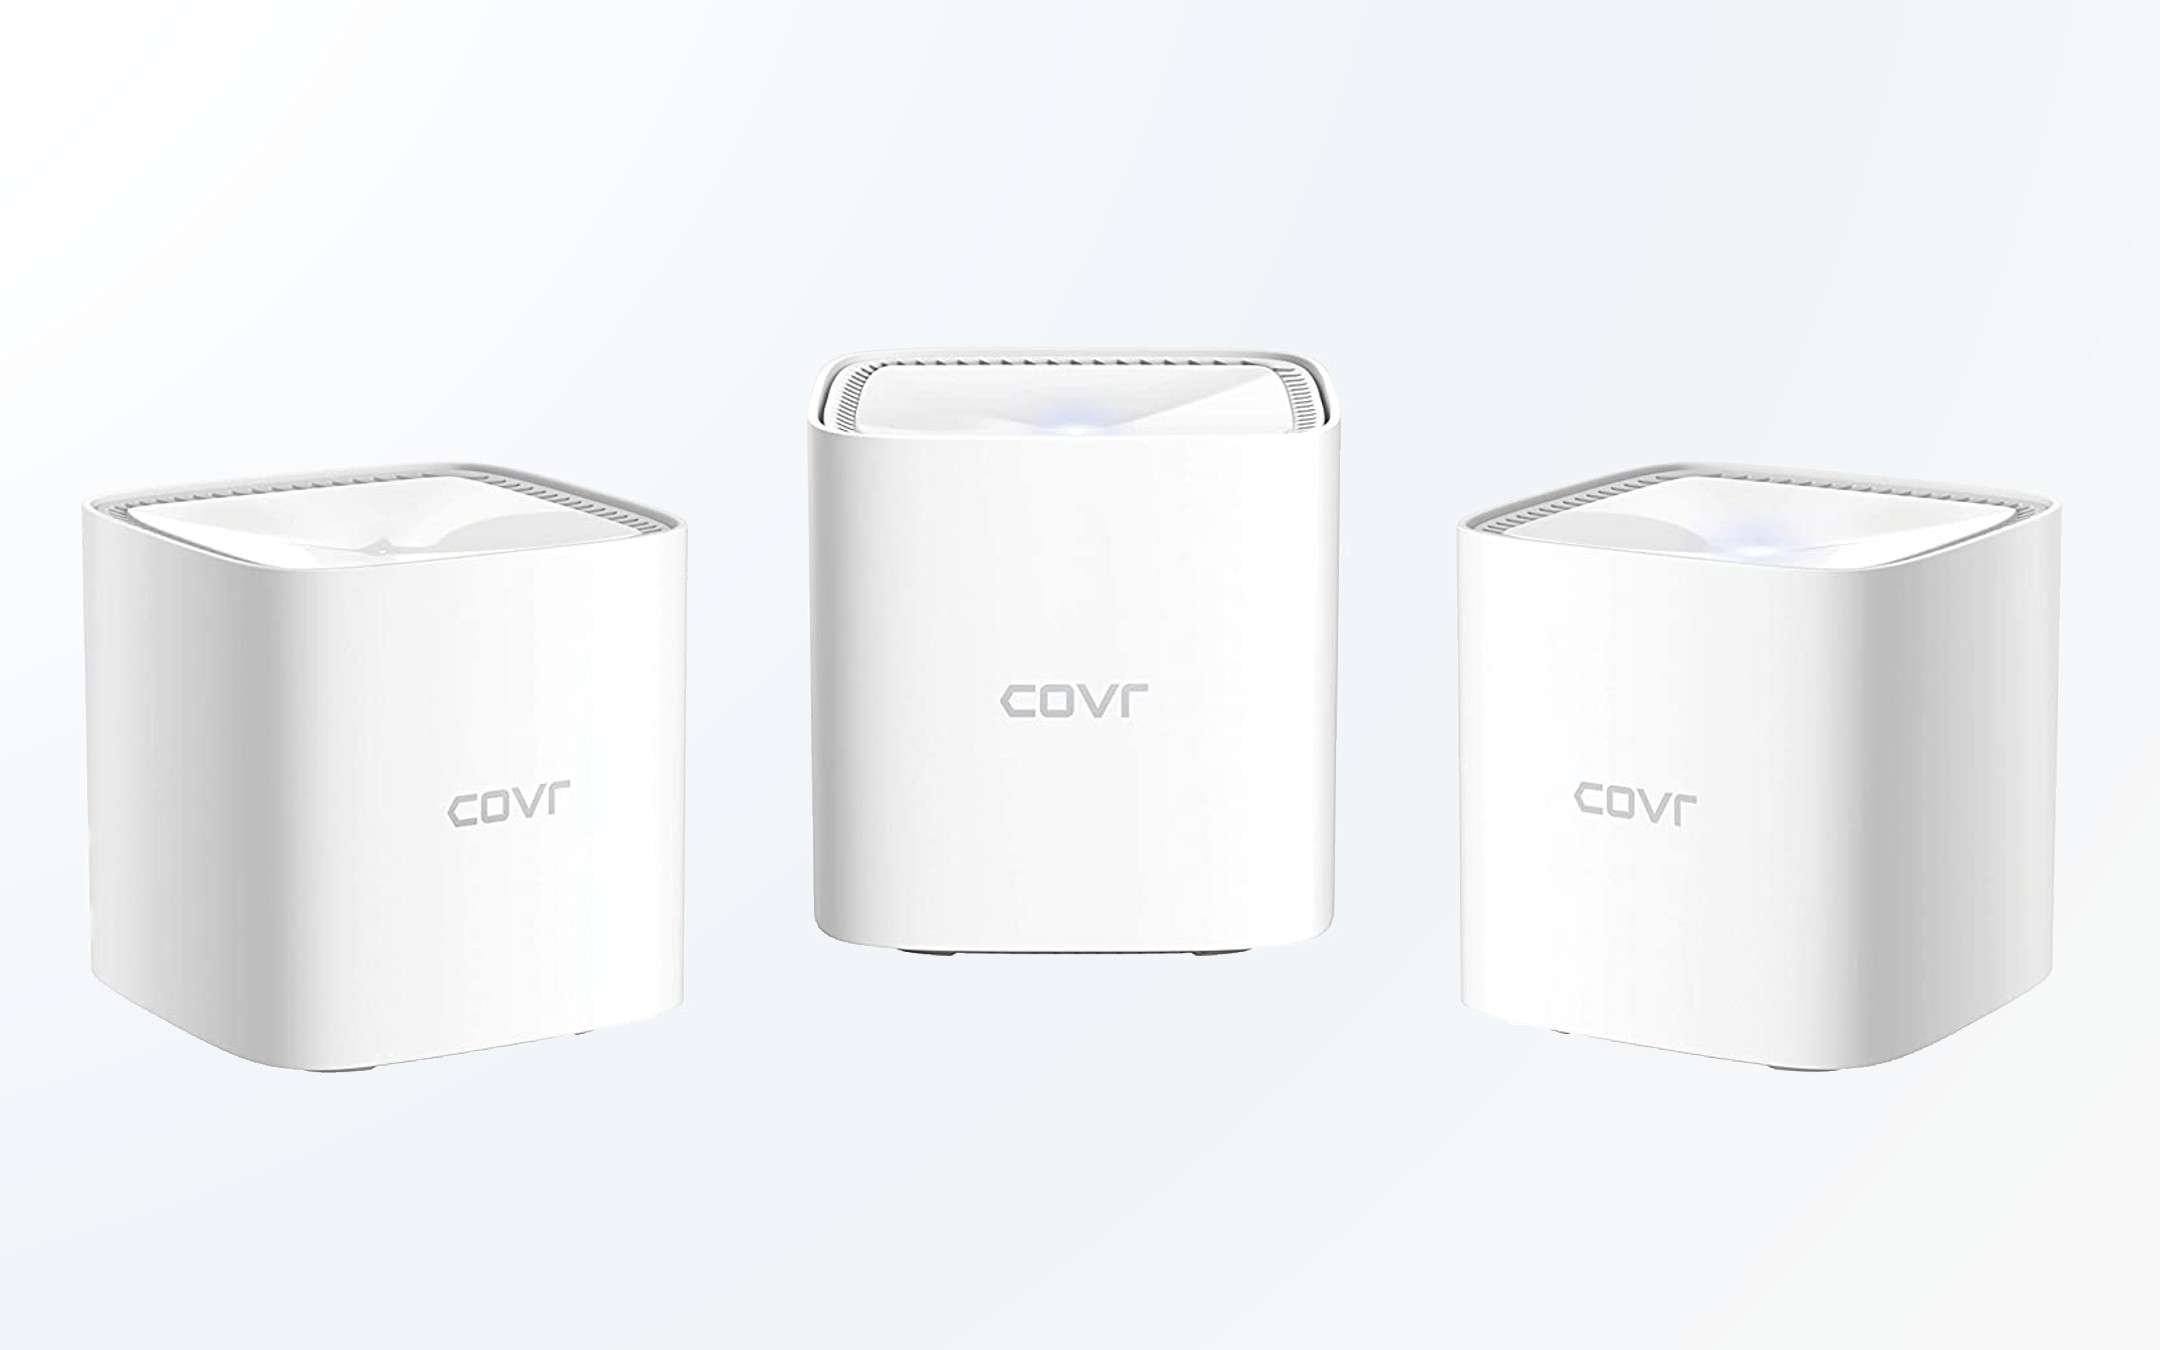 D-Link COVR-1103: the mesh network with the discount